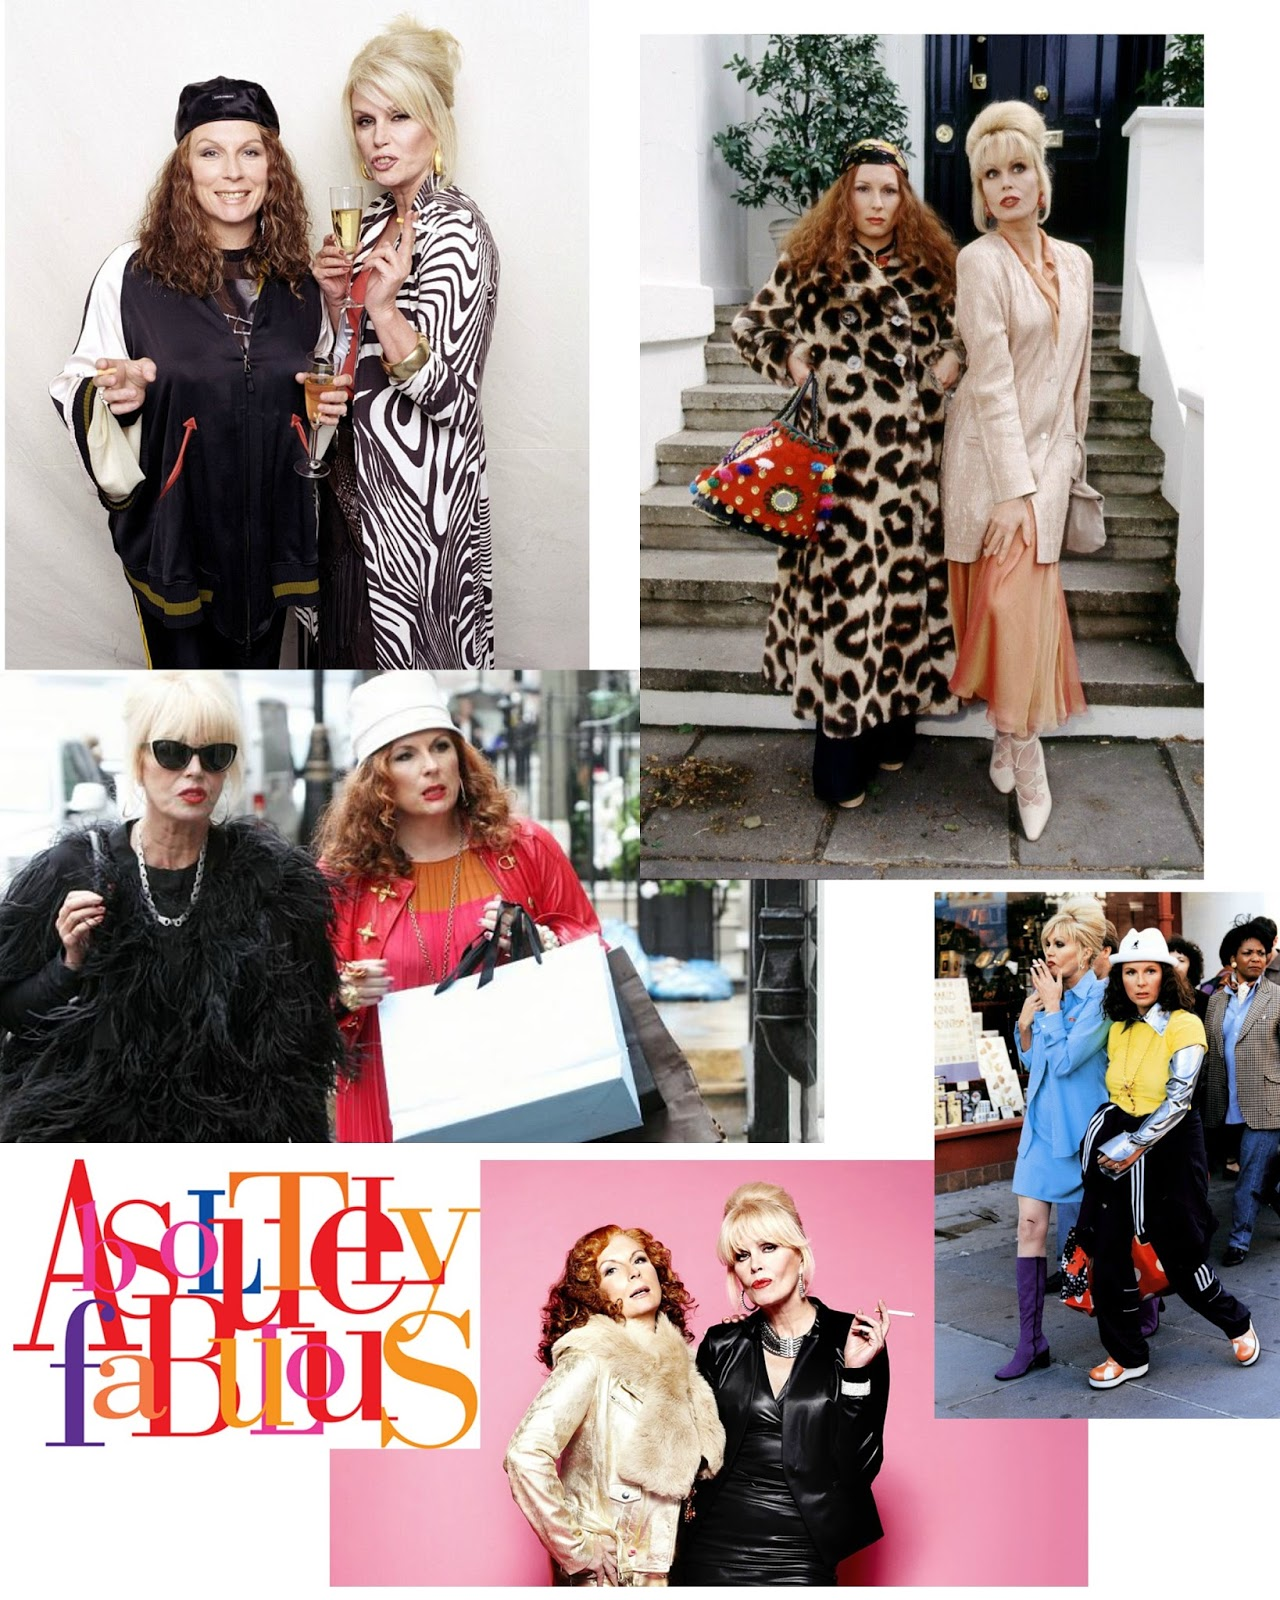 mamasVIB | V. I. BUYS: Sweetie, Darling…this is how to look Absolutely Fabulous TODAY!, Absolutely Fabulous movie, Ab Fab, fashion from ab fab